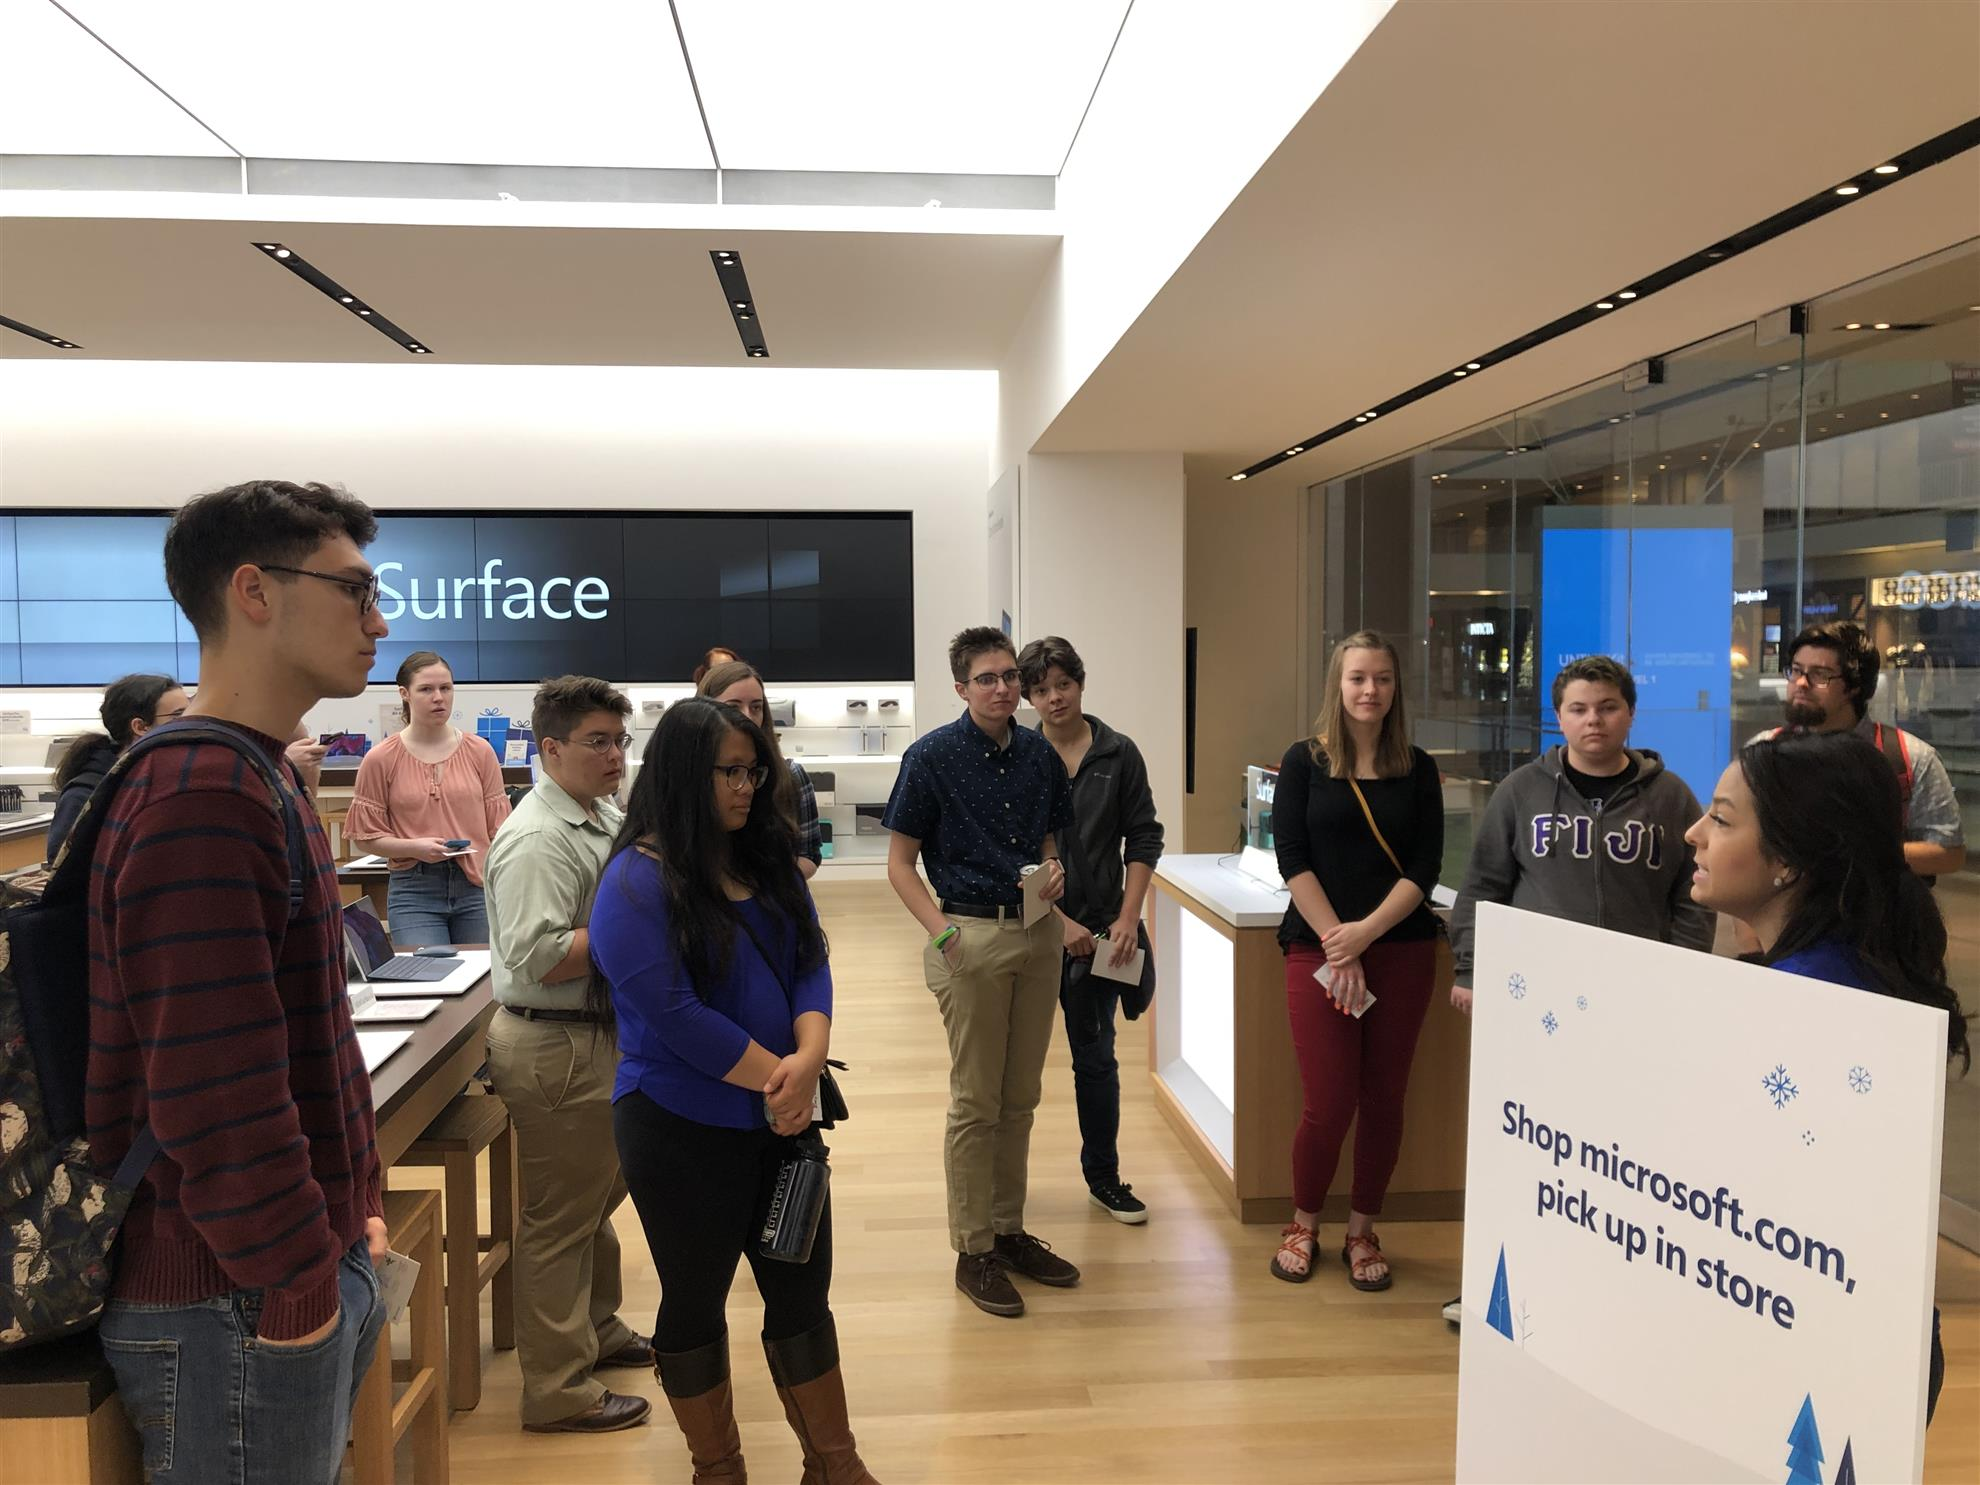 Participants enjoy a tour of the Microsoft Store in the Westin Galleria Mall.